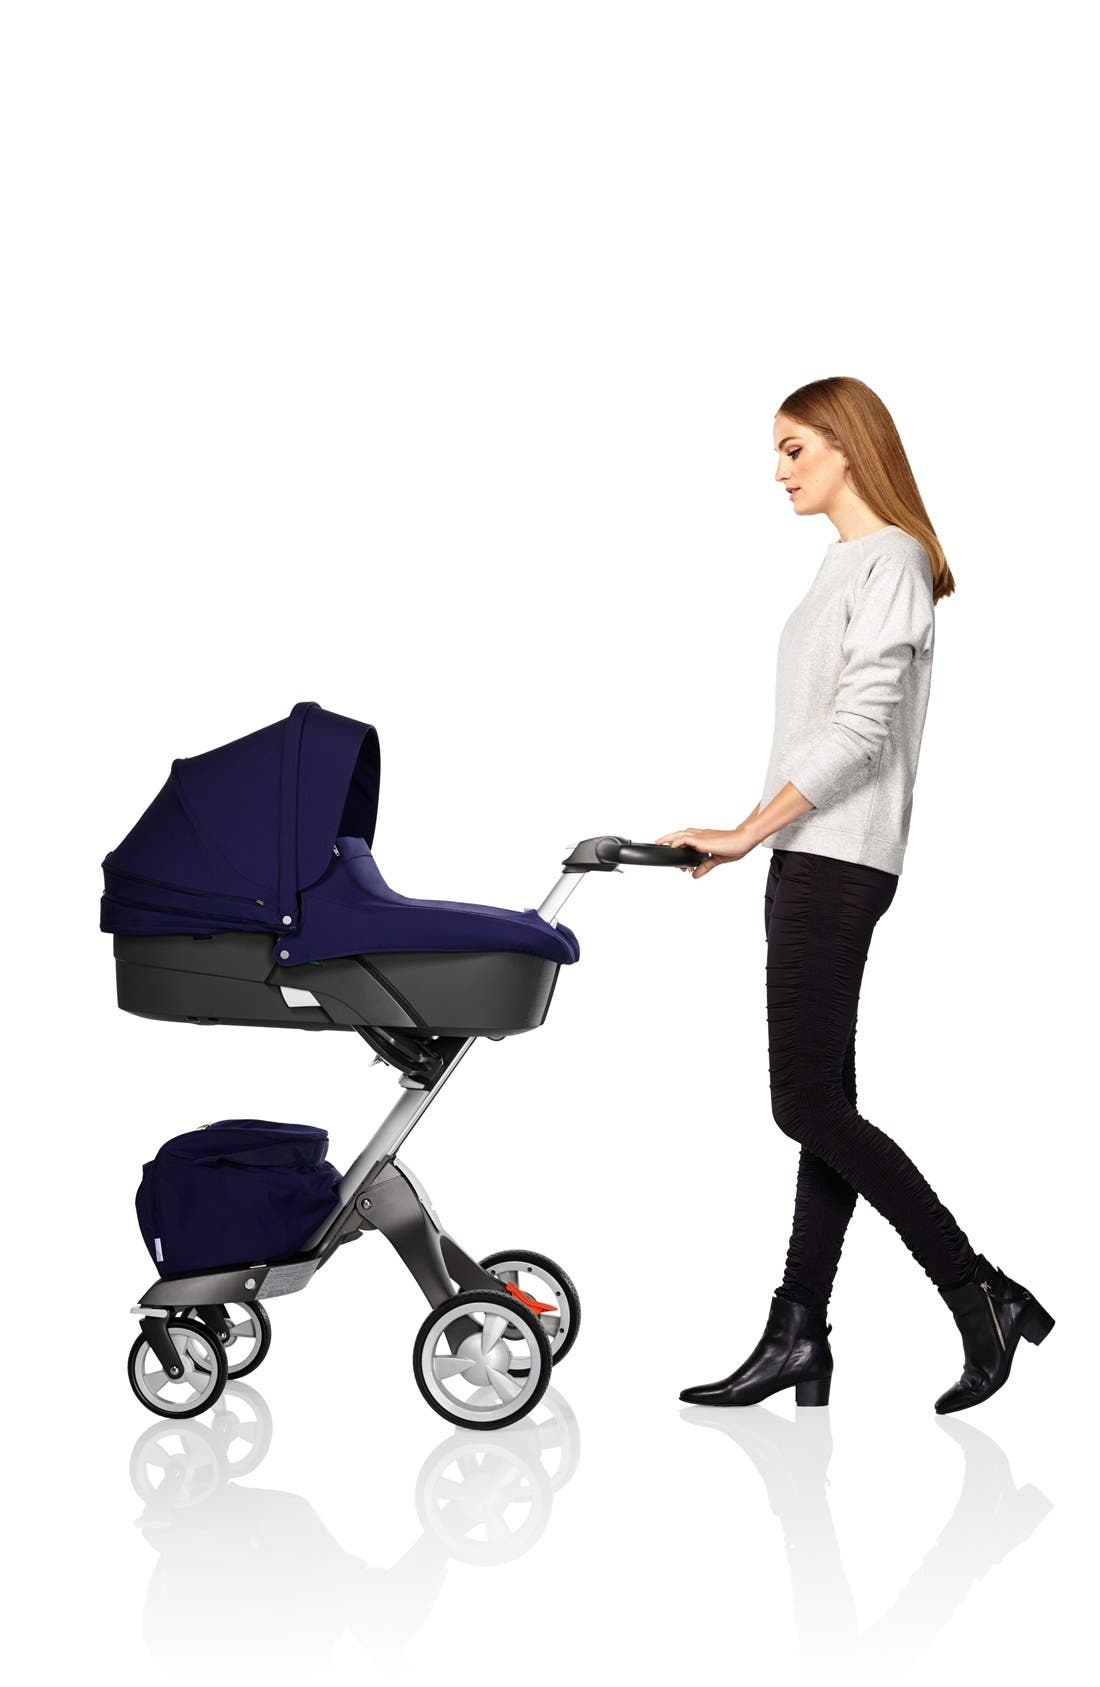 STOKKE,                             'Xplory<sup>®</sup>' Stroller Carry Cot,                             Alternate thumbnail 4, color,                             001